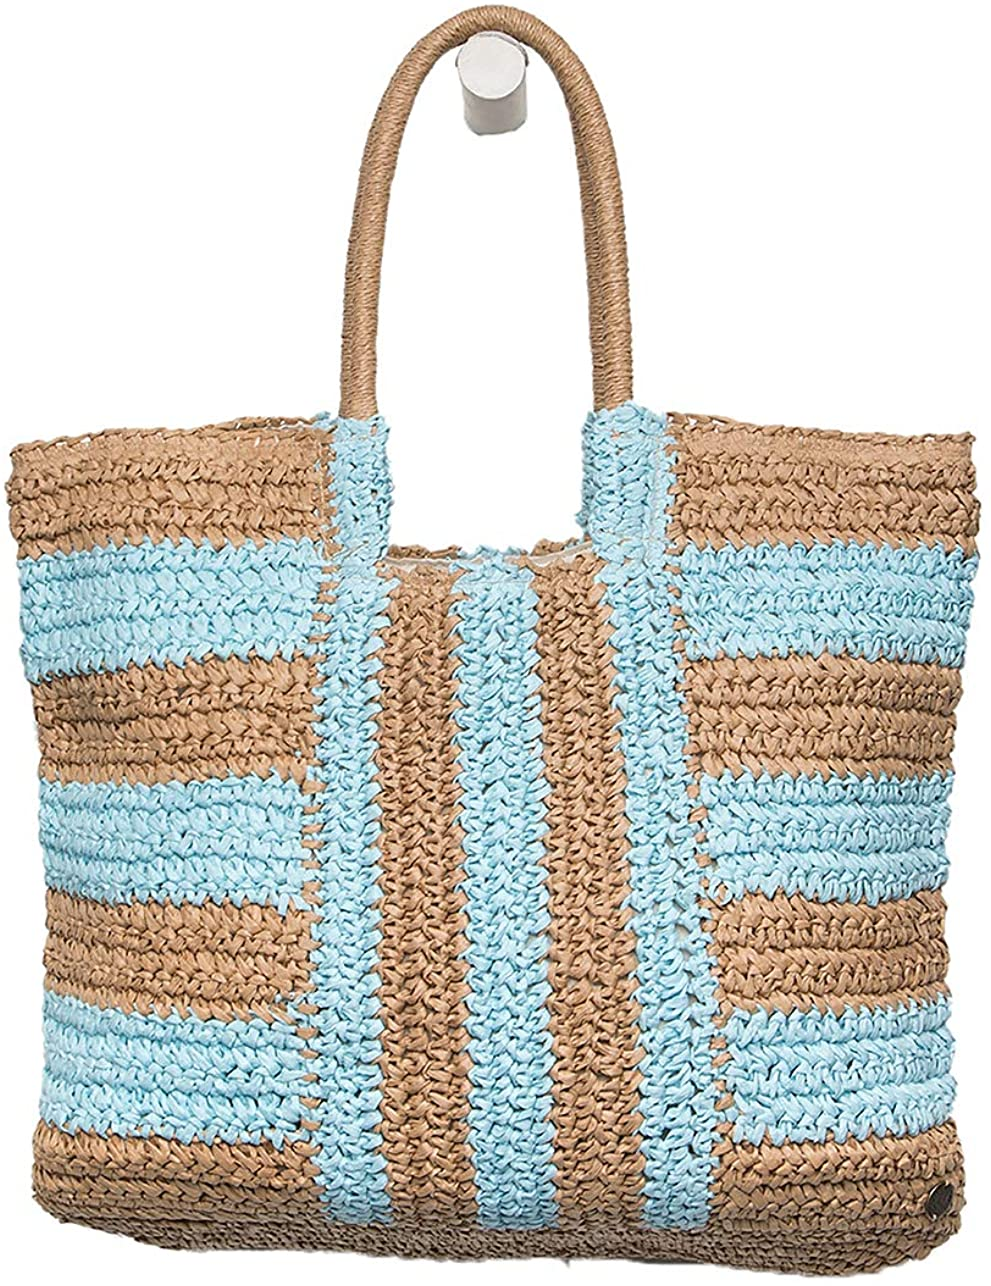 Billabong In Living Color Tote